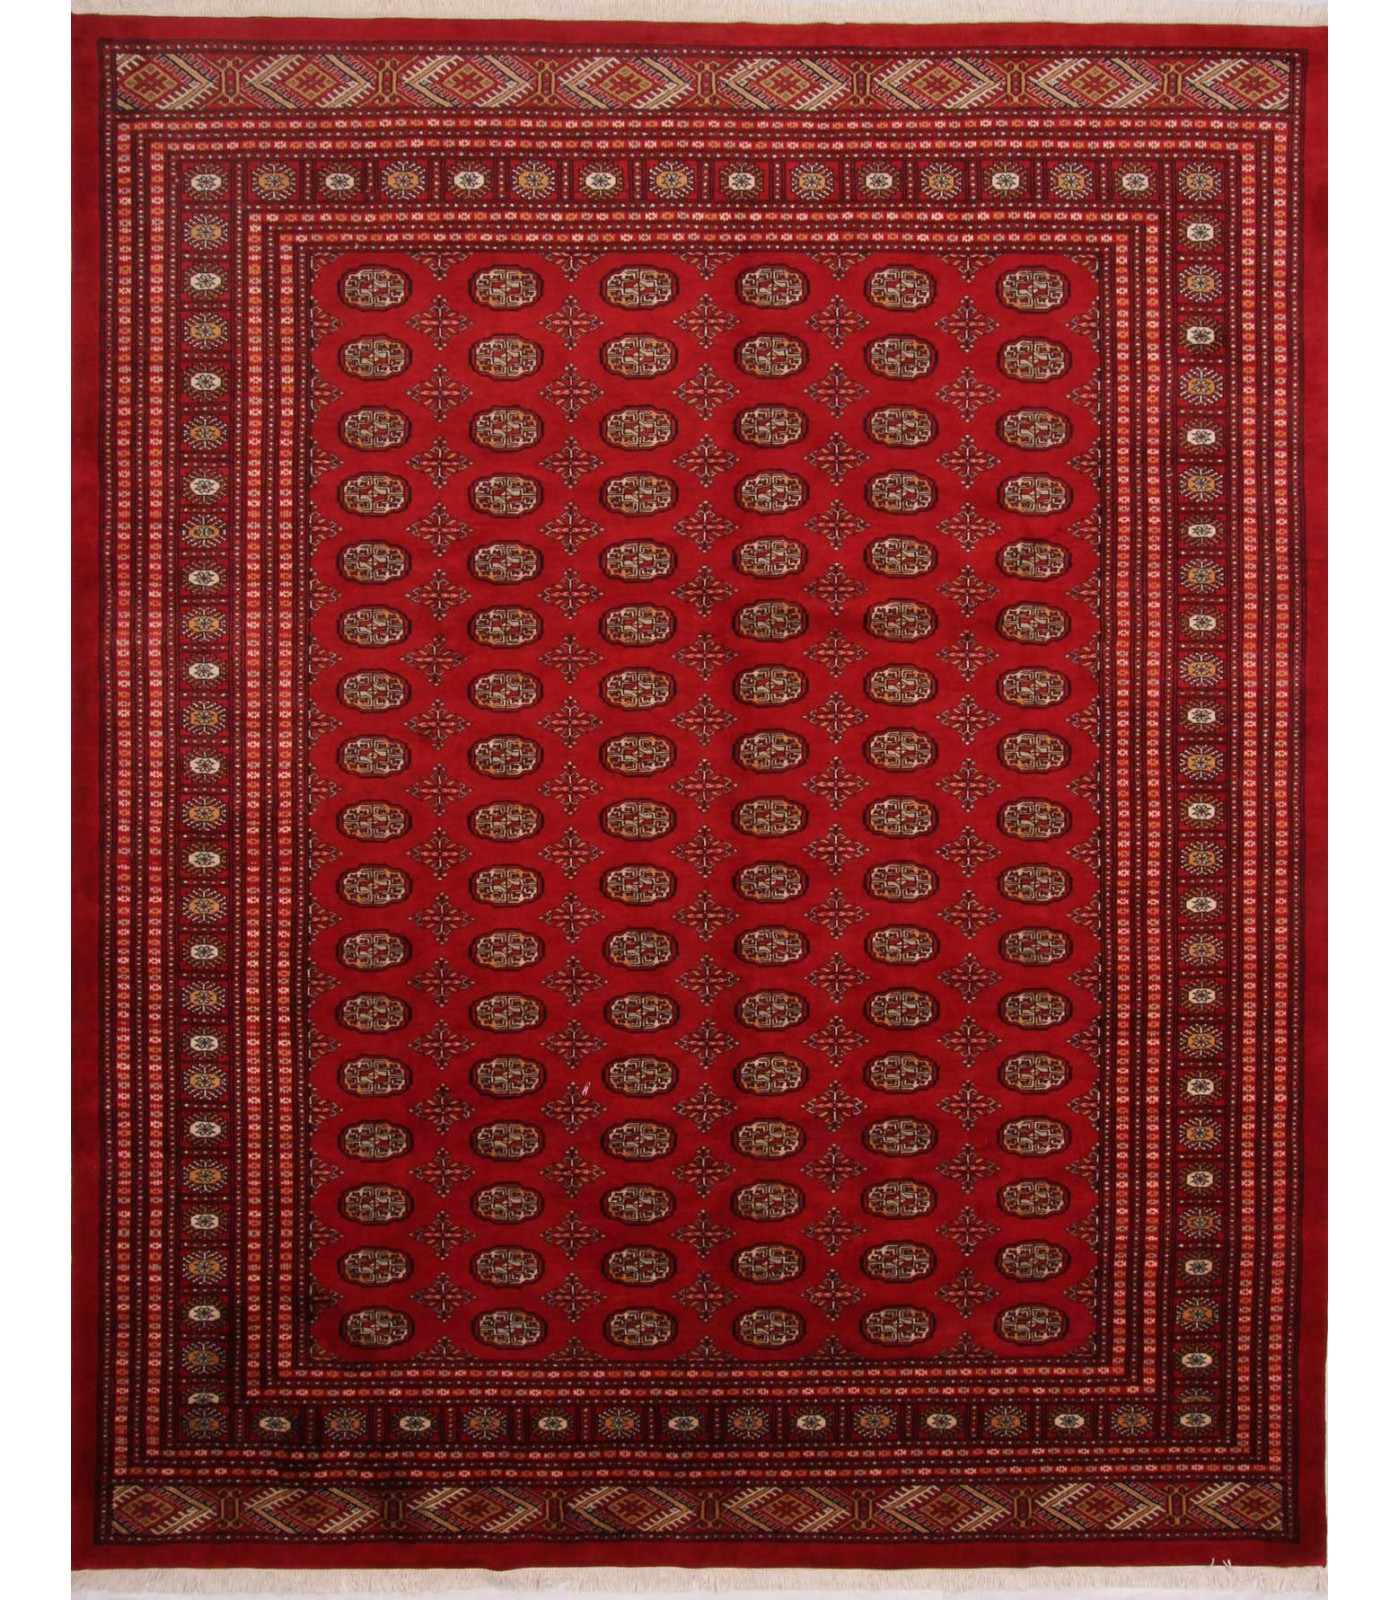 Buy A Hand Knotted Antique Persian Rugs In New Jersey